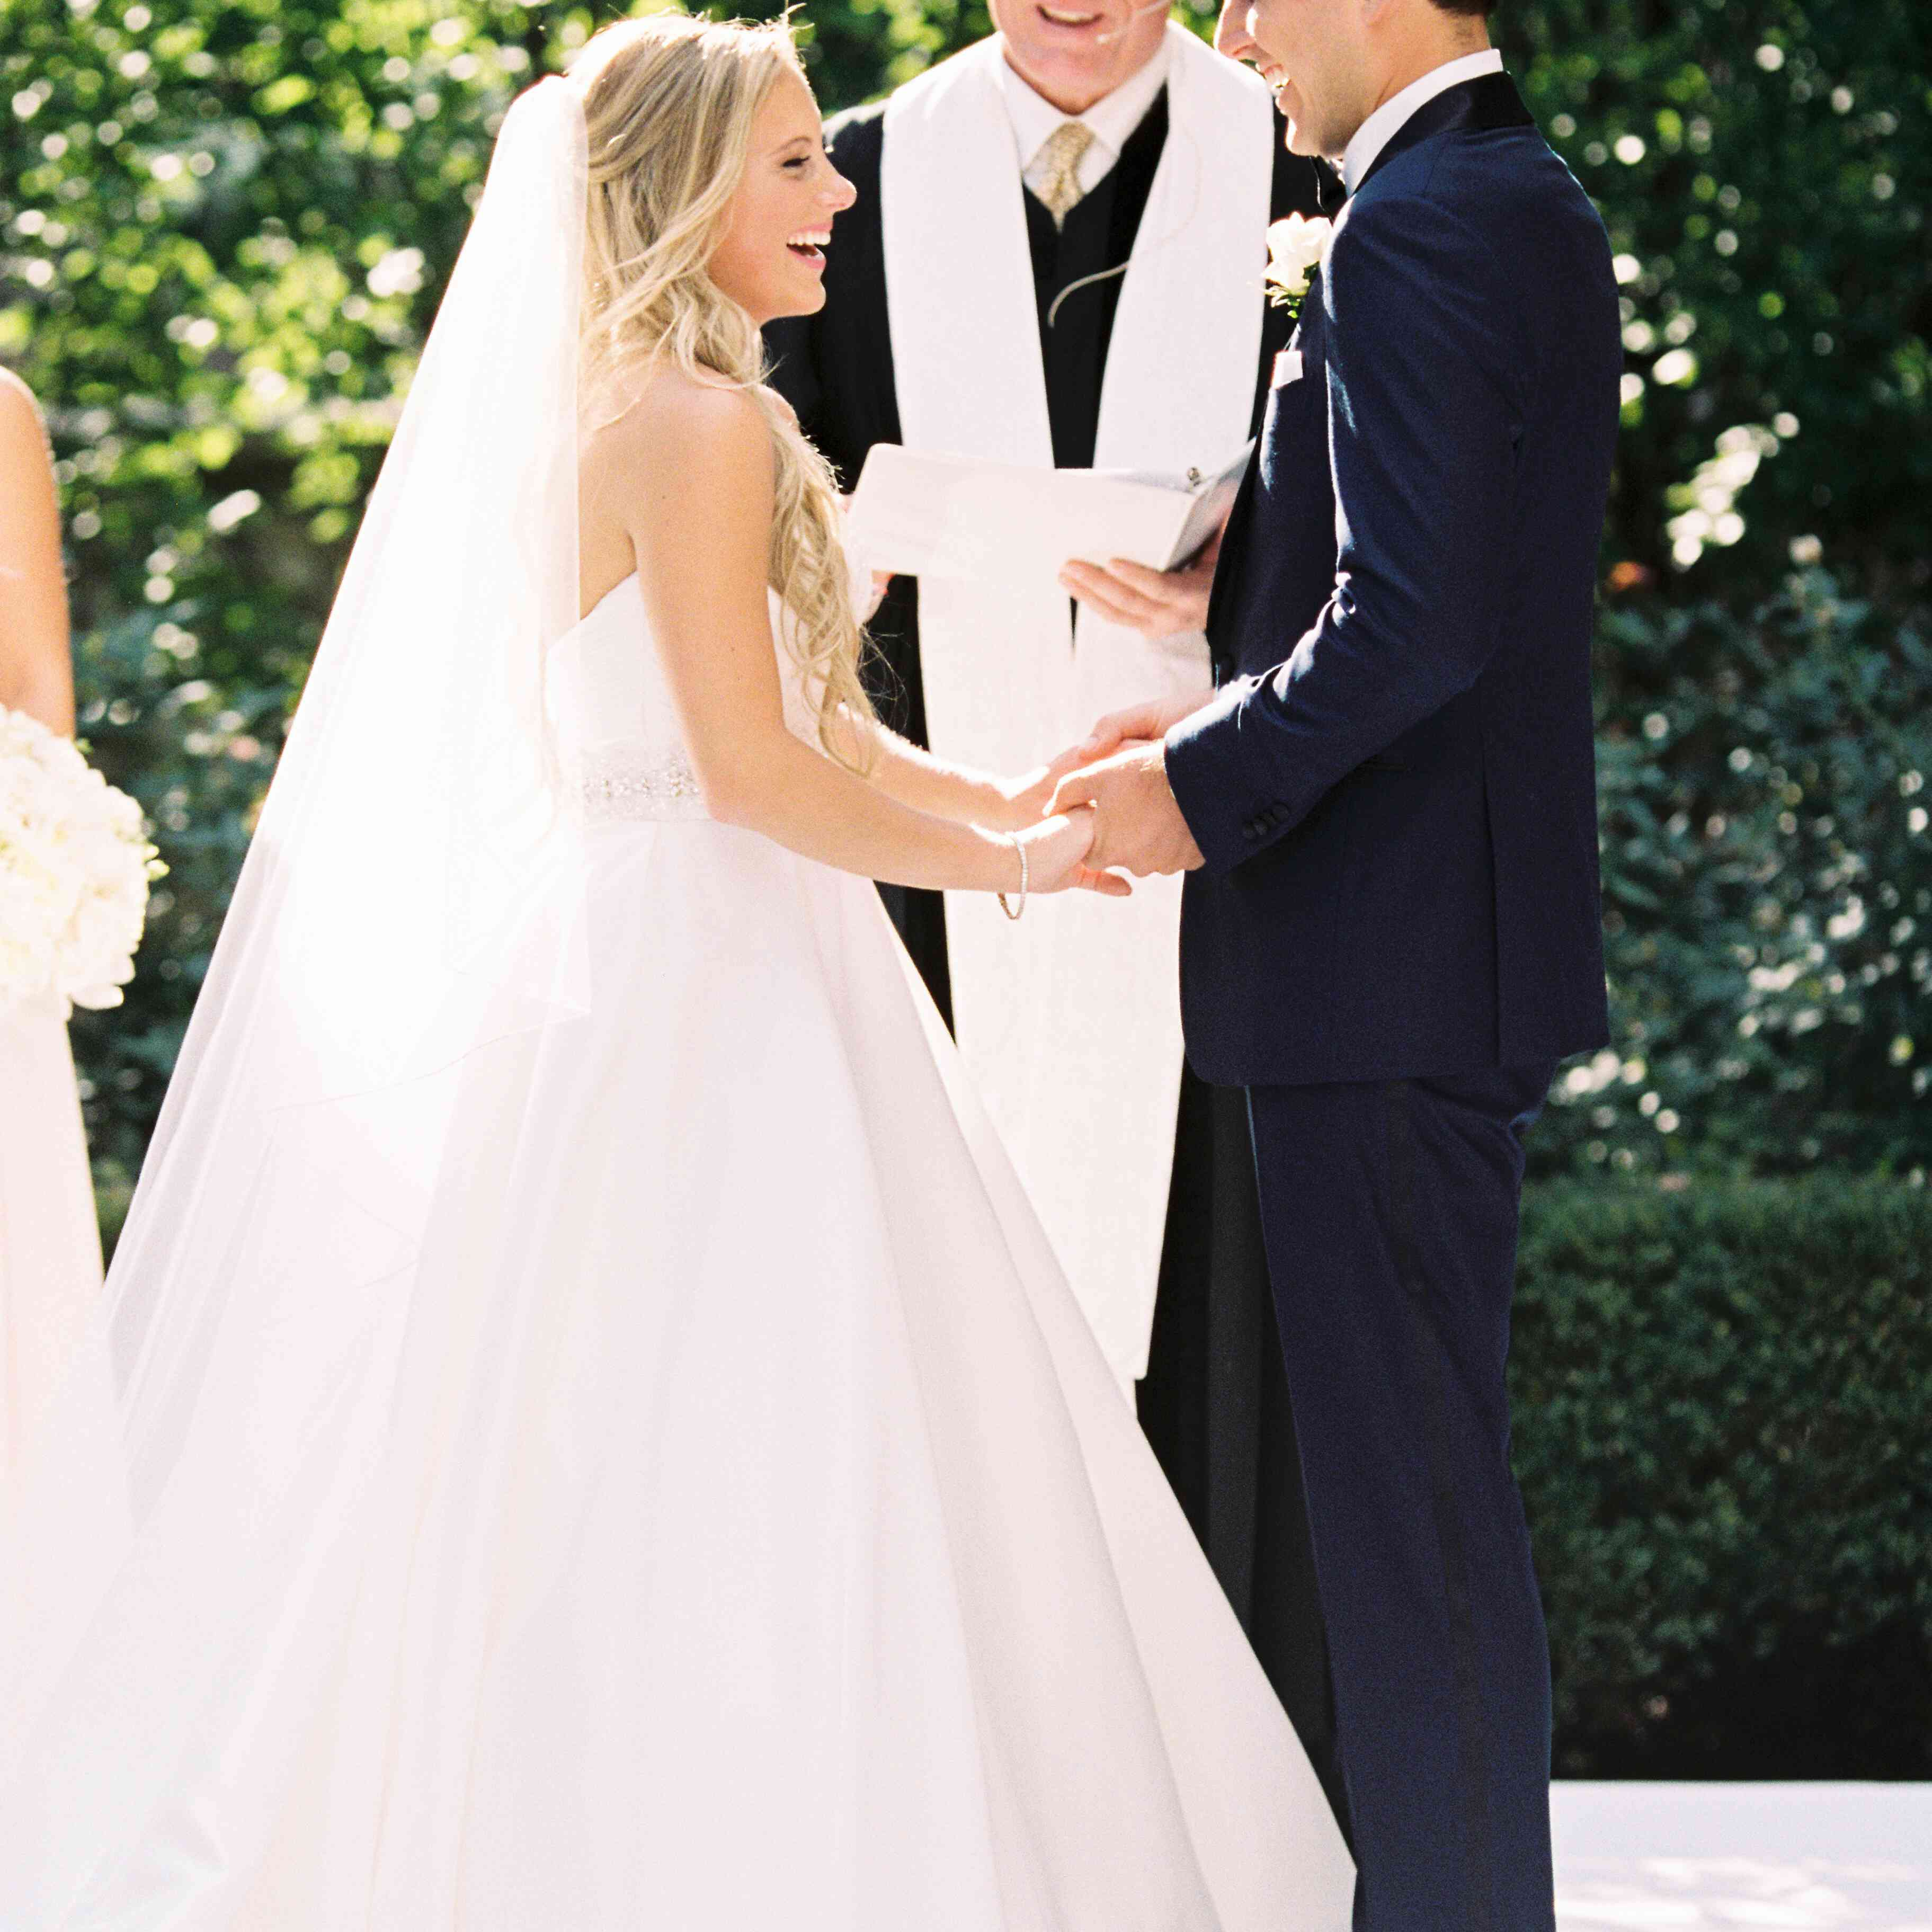 Bride and groom holding hands near ceremony